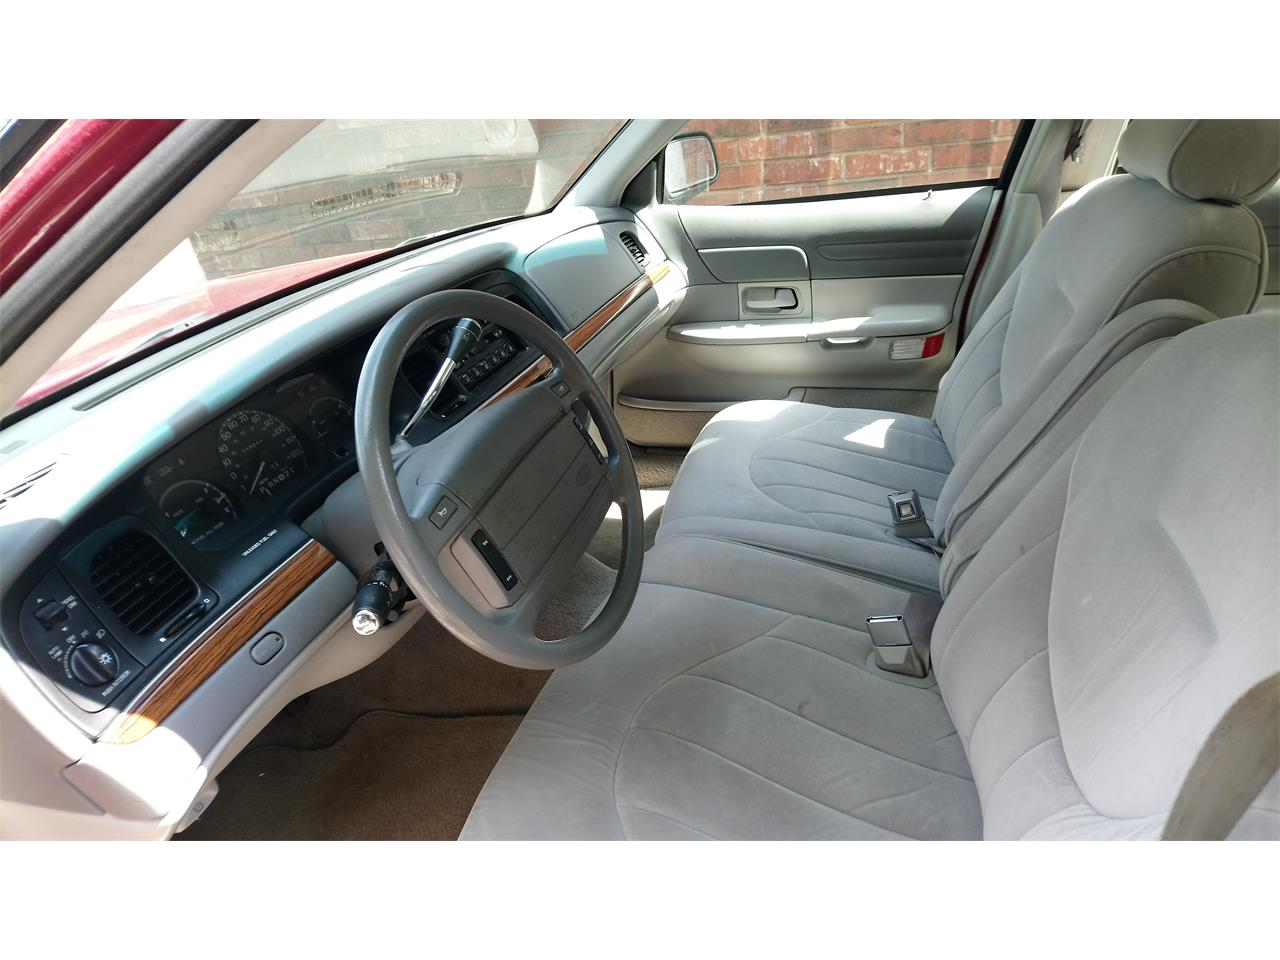 1995 Ford Crown Victoria For Sale Cc 1128815 Large Picture Of 95 O6zz